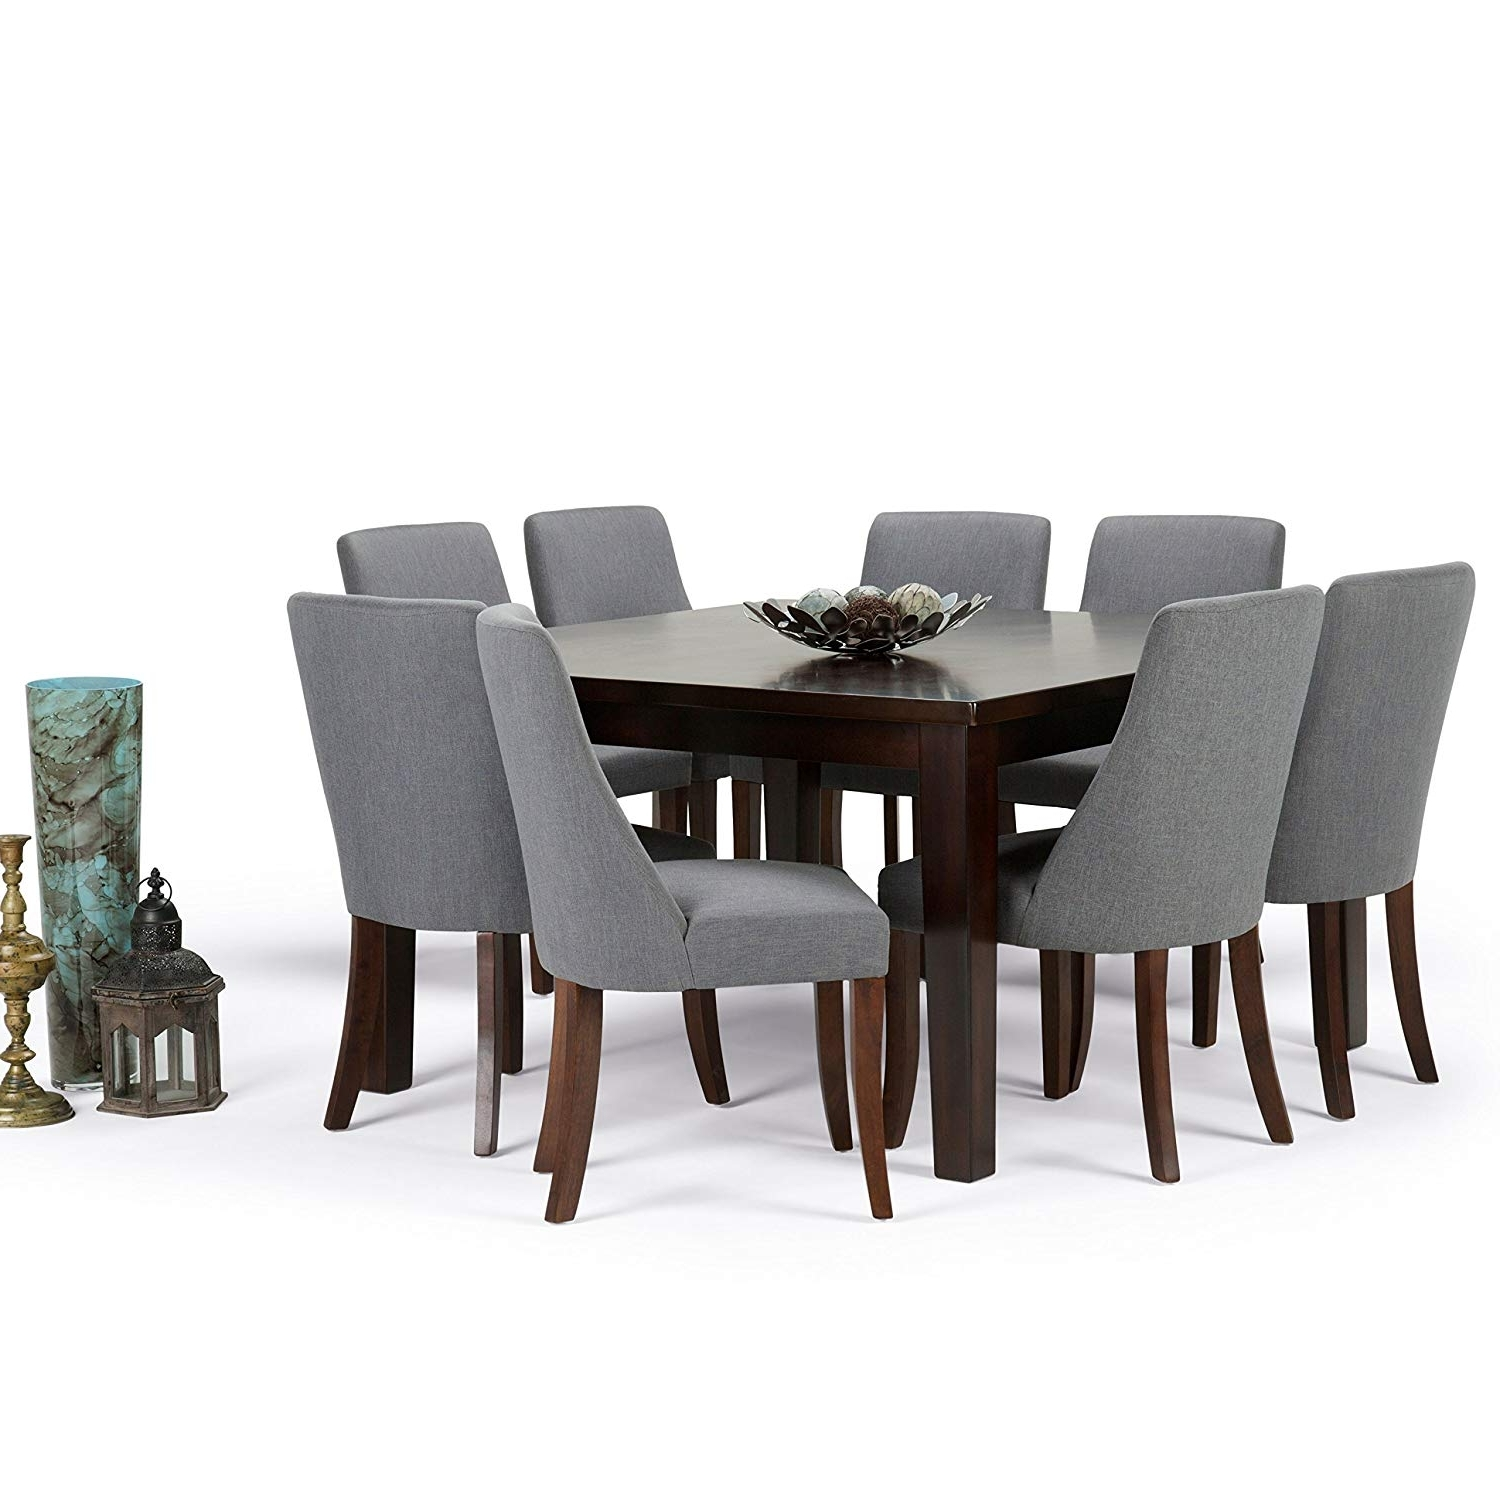 Amazon: Simpli Home Walden 9 Piece Dining Set, Slate Grey Throughout Widely Used Walden 9 Piece Extension Dining Sets (View 1 of 25)